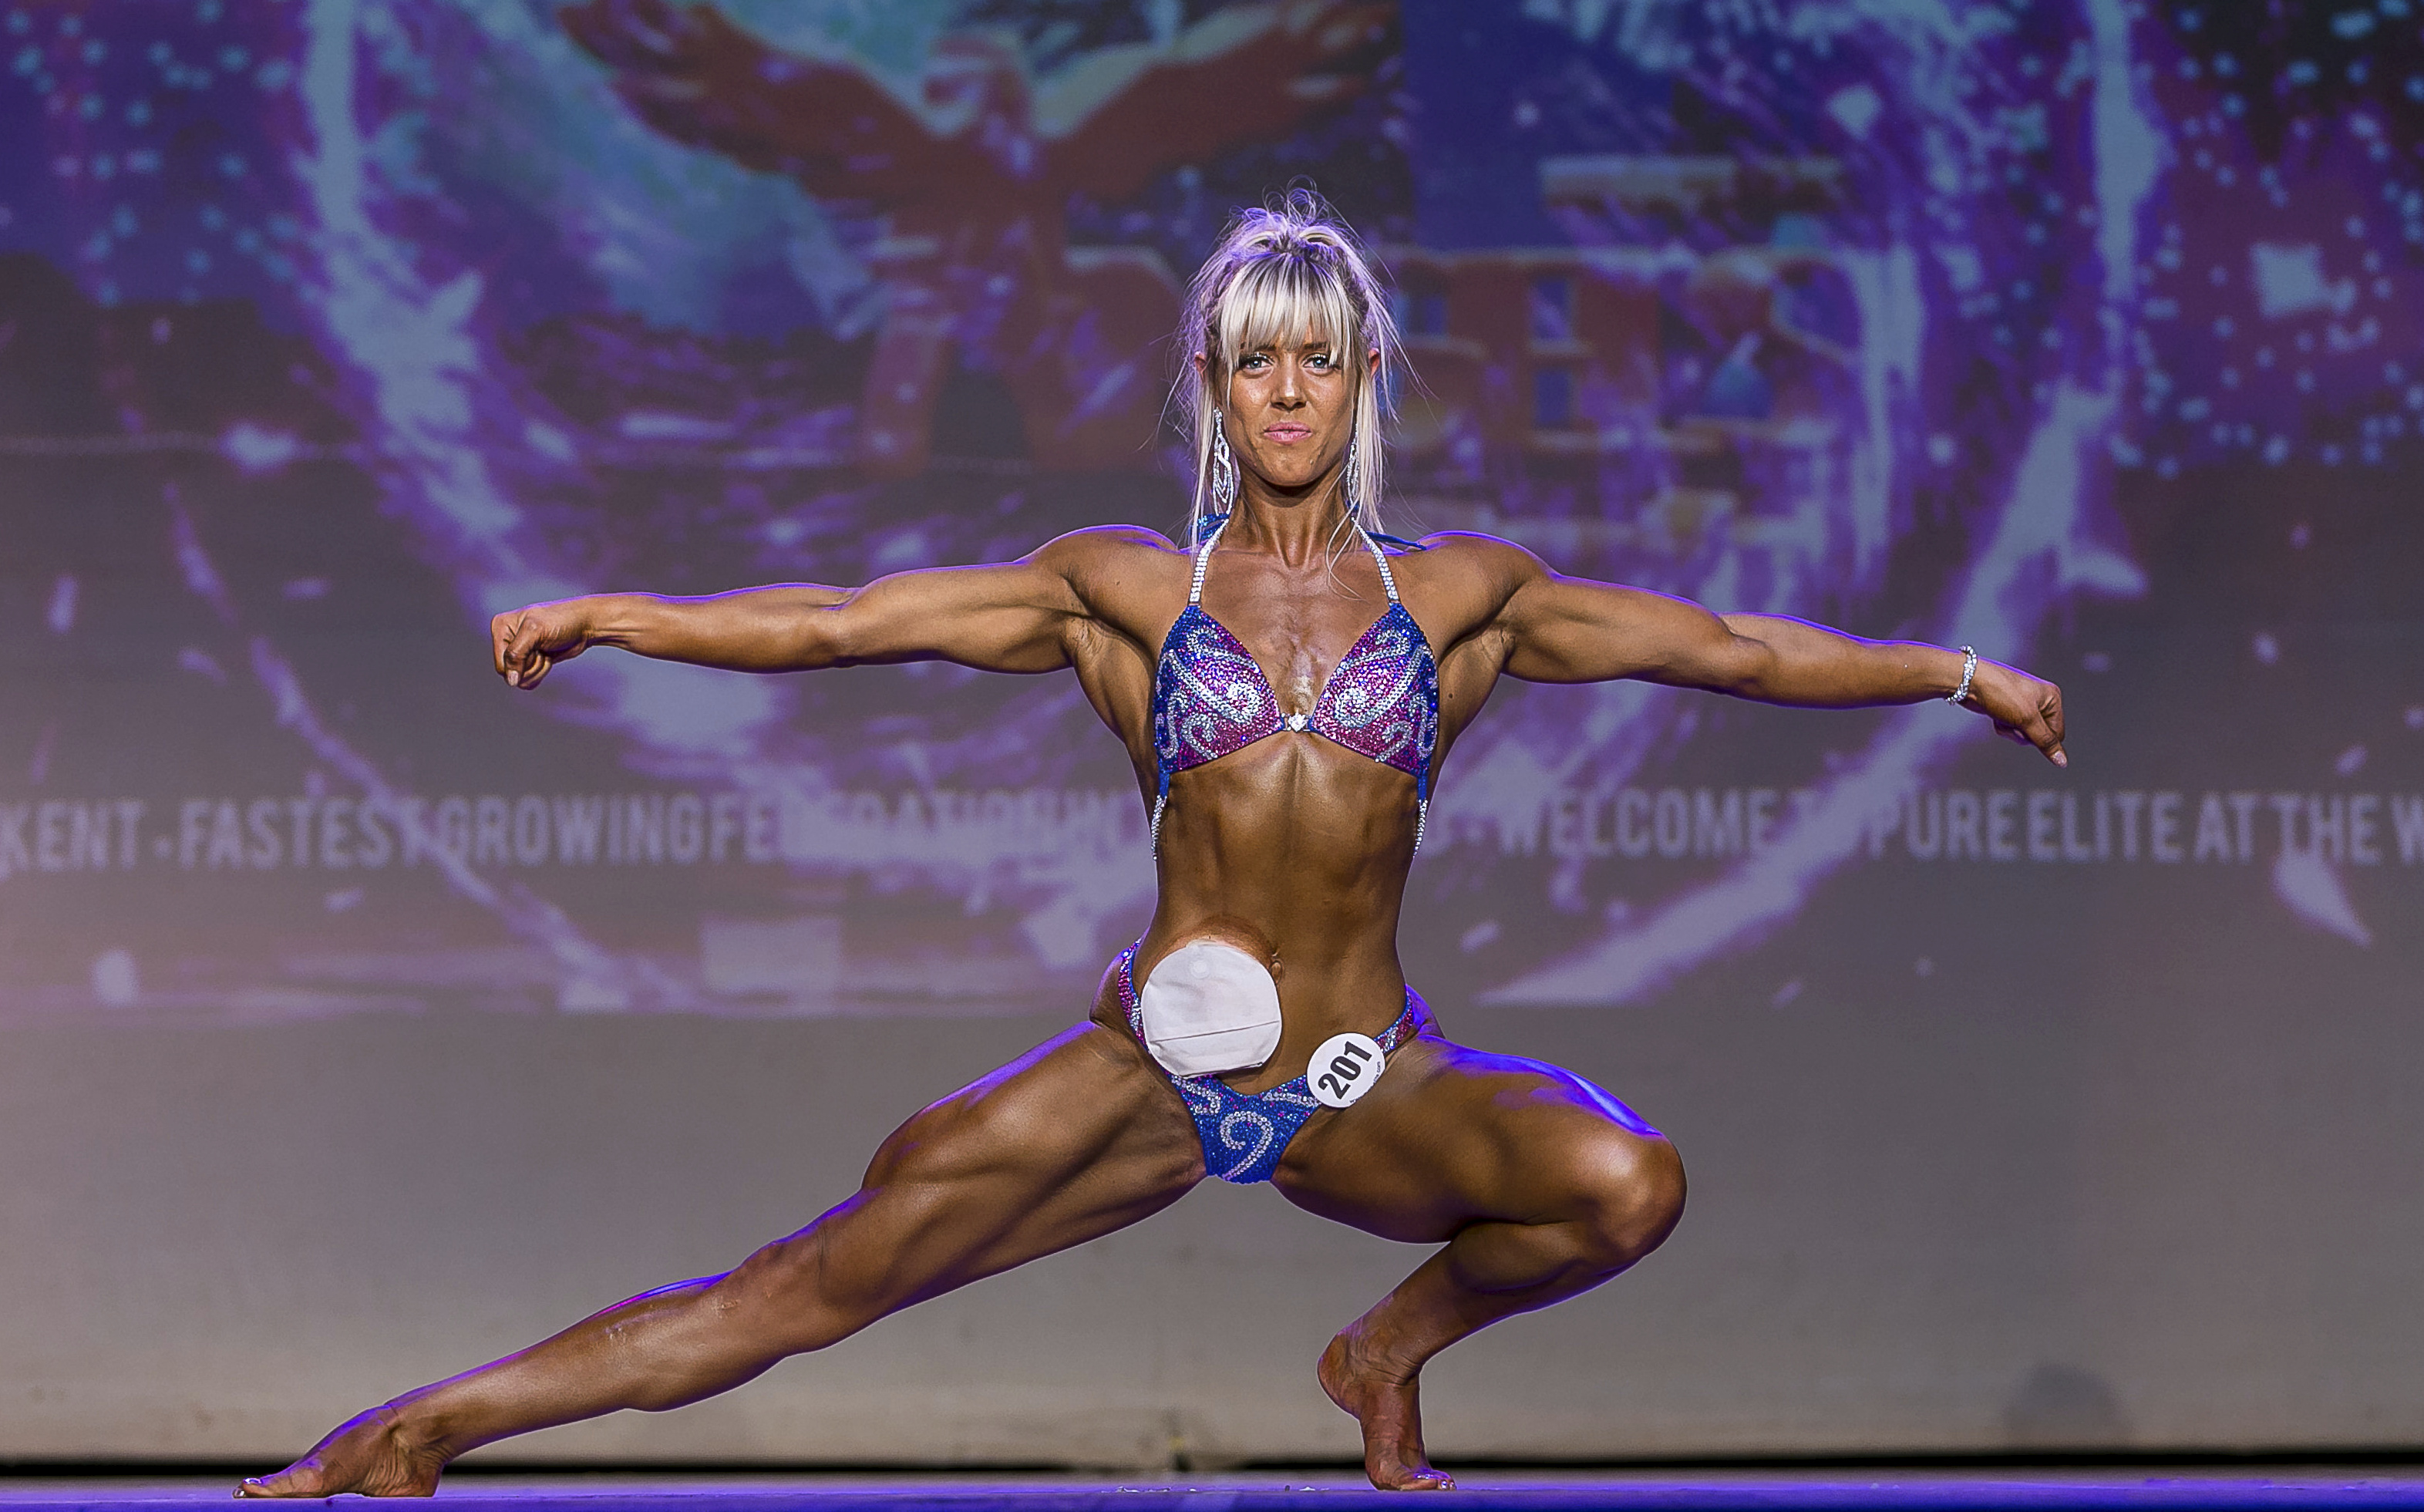 Colostomy Bag Wearing Bodybuilder Crowned World Champ - SWNS